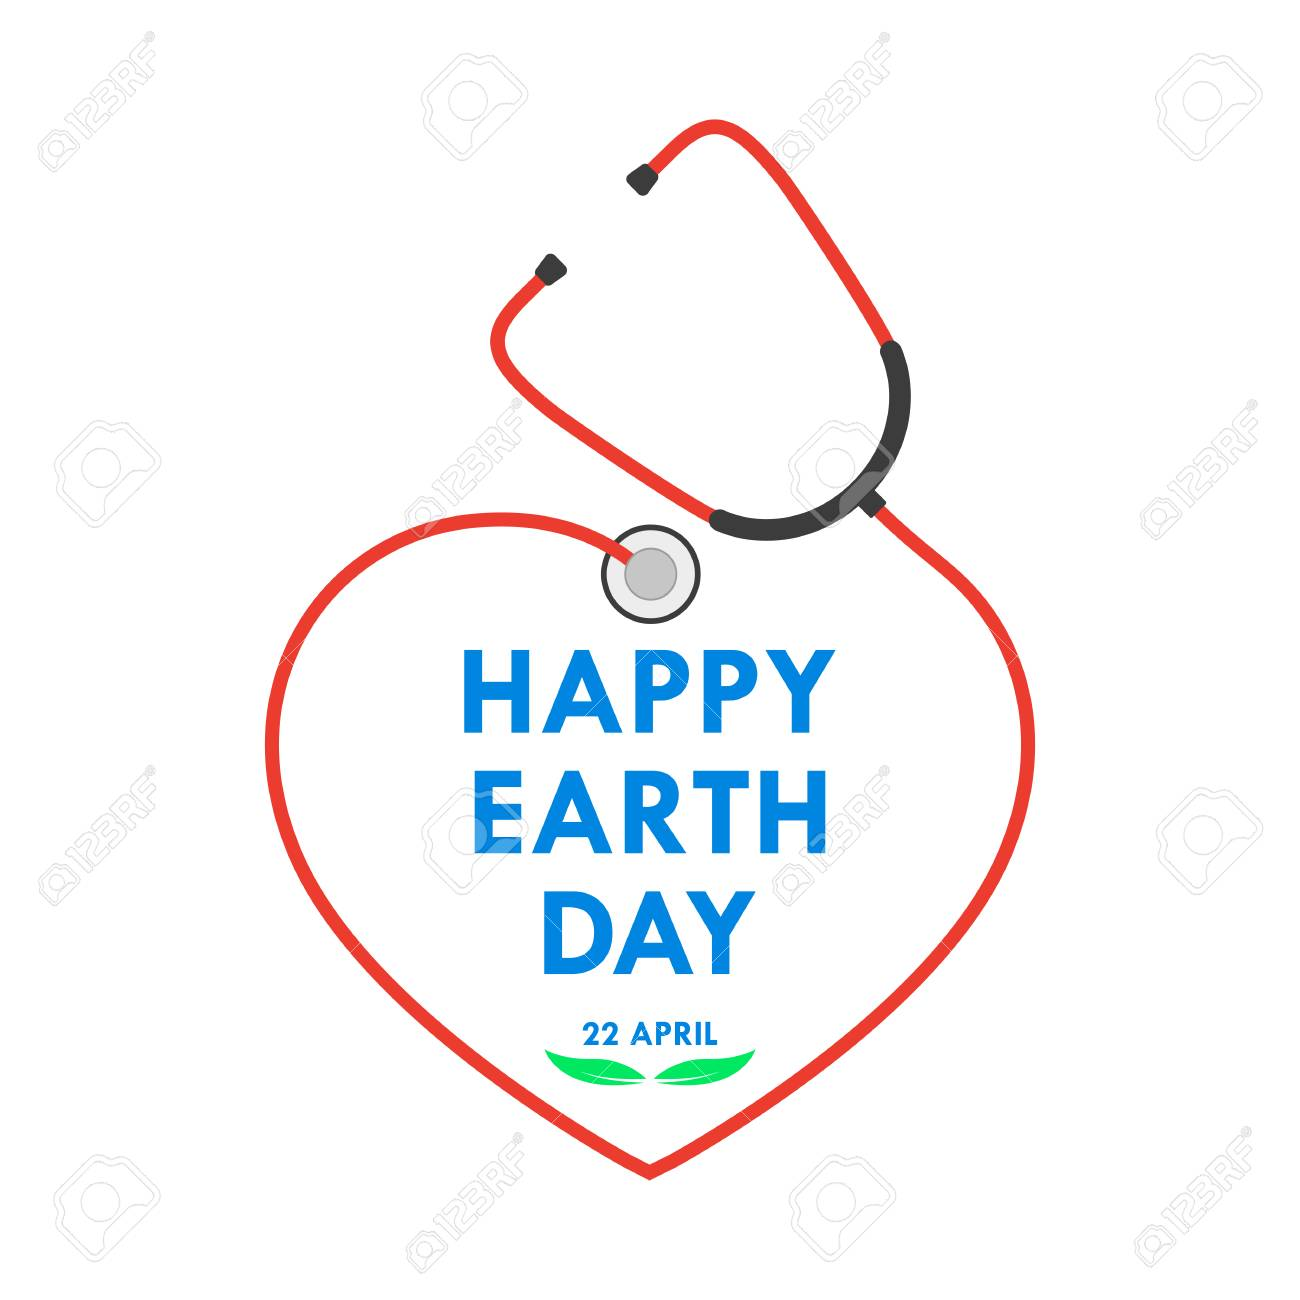 Happy Earth Day logo with stethoscope in flat design. Vector illustration. Happy Earth Day, ecology concept. - 94045239